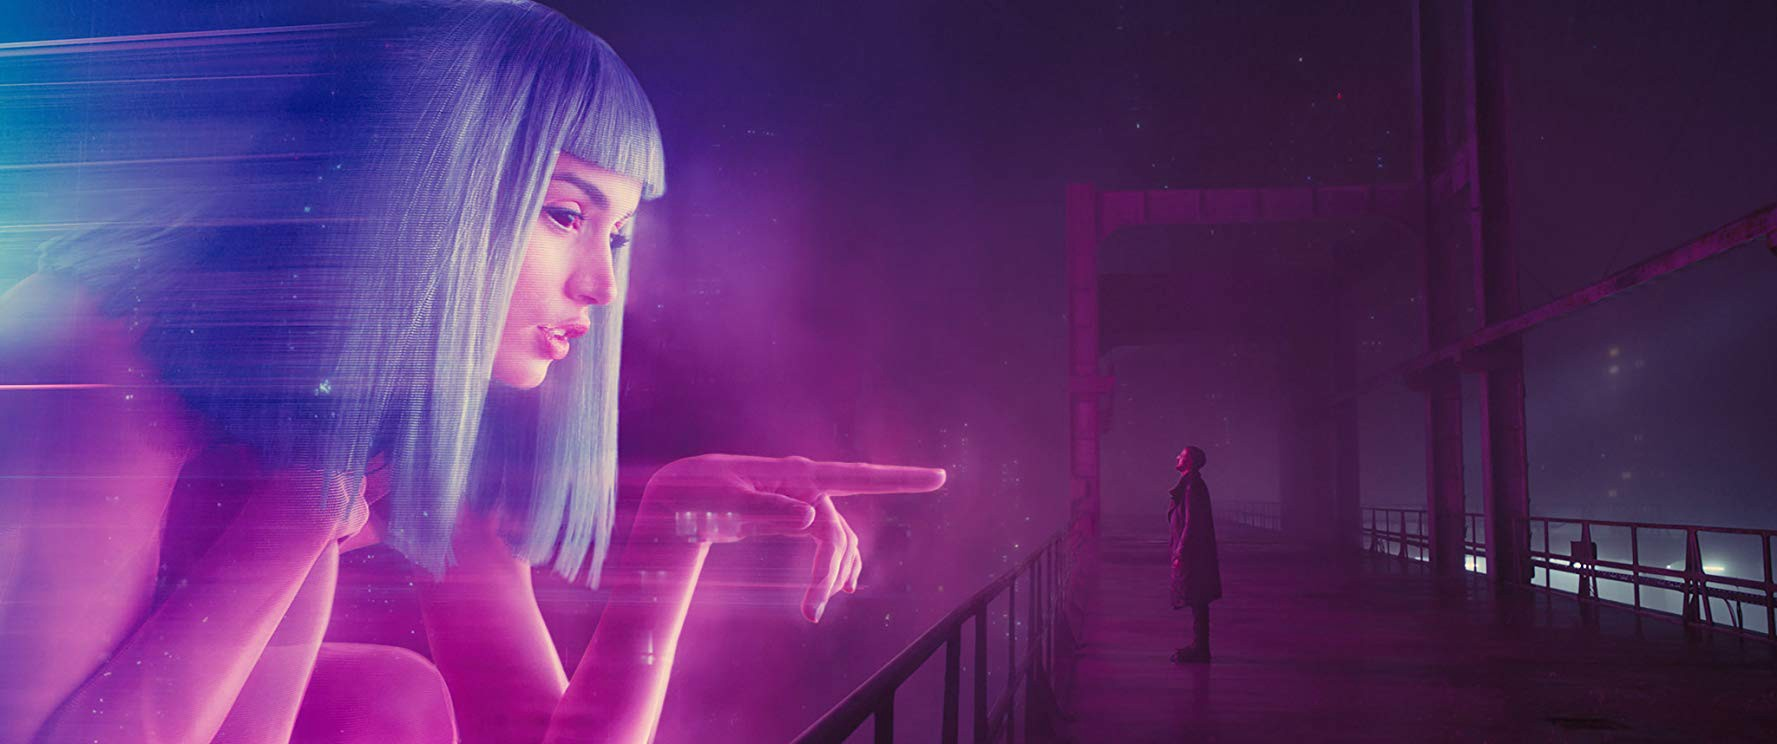 Blade Runner 2049 Is A Hypnotic Meditation On What It Means To Be Human By Dirk Hooper Media Cake Medium